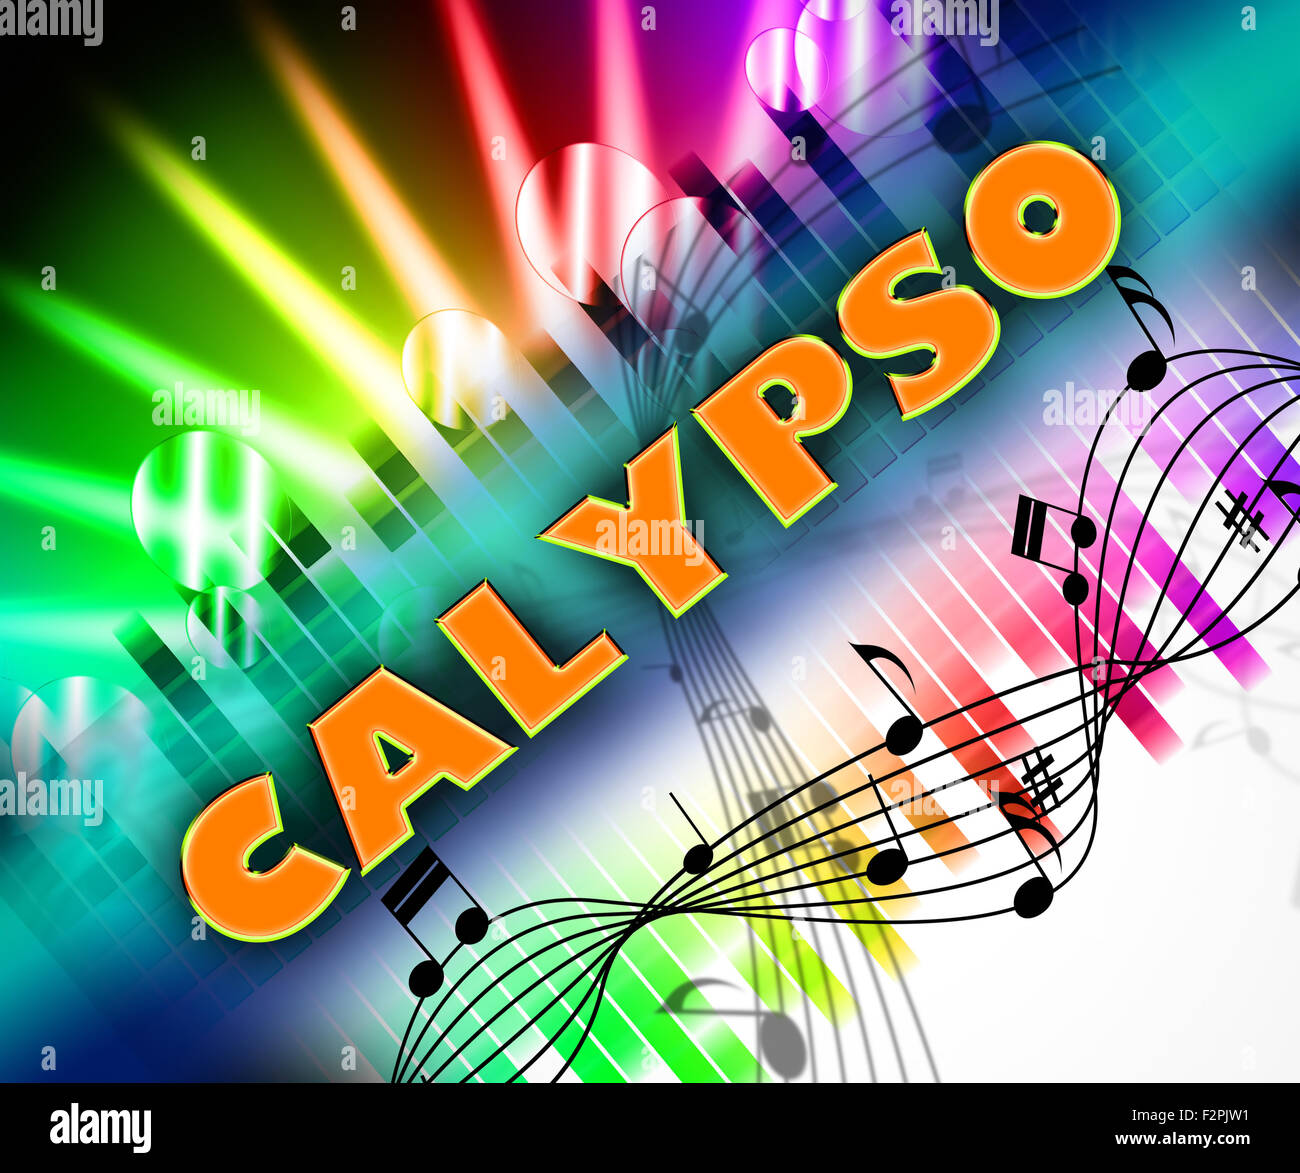 calypso music What is calypso, calypso is a style of afro-caribbean music that originated in  trinidad and tobago from african and european roots the roots.